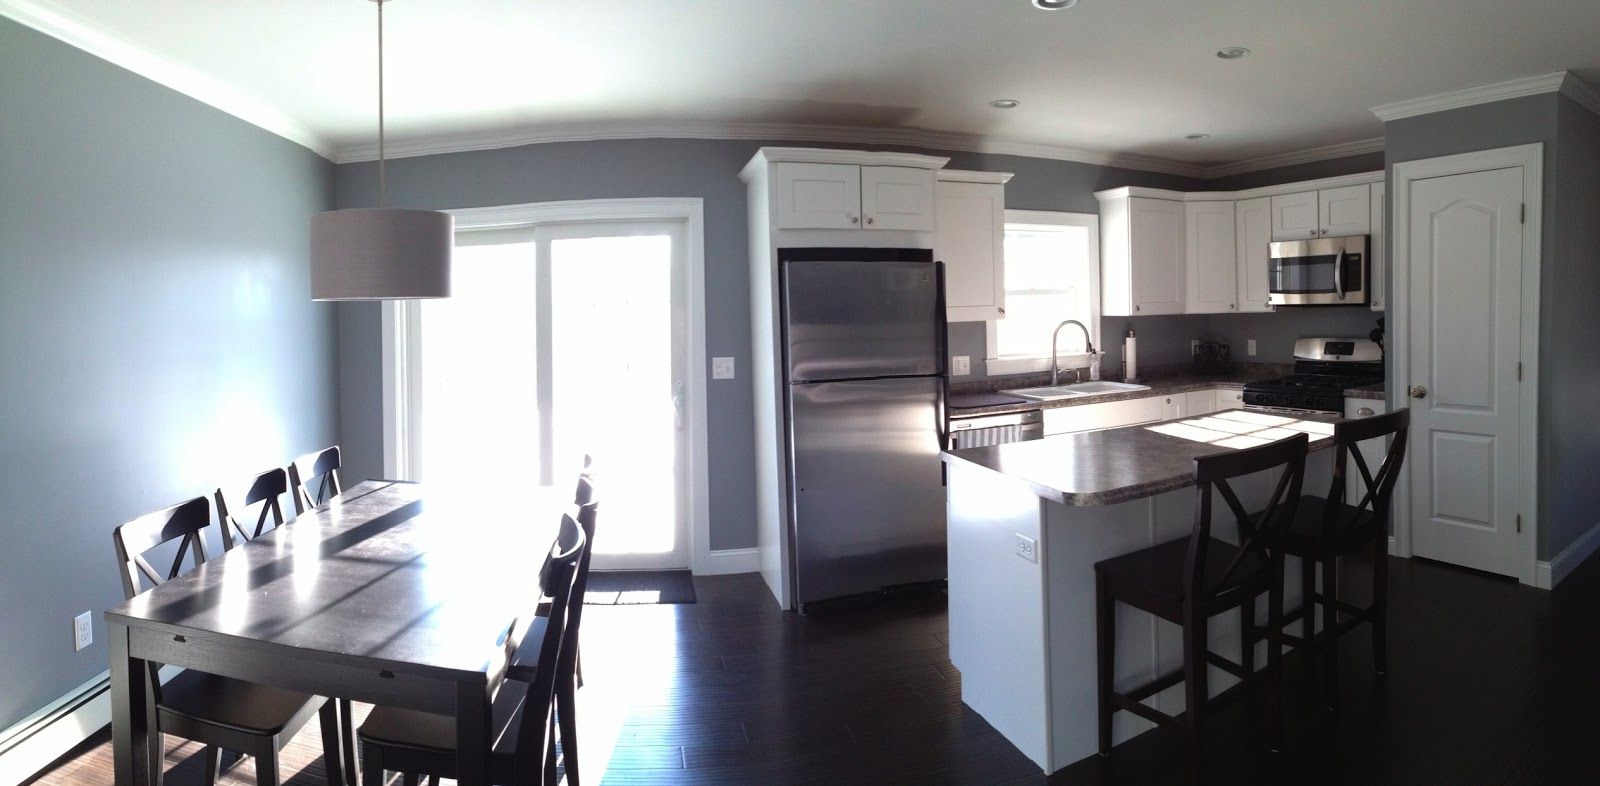 kitchen dining room paint colors stools with backs open concept and studio gray